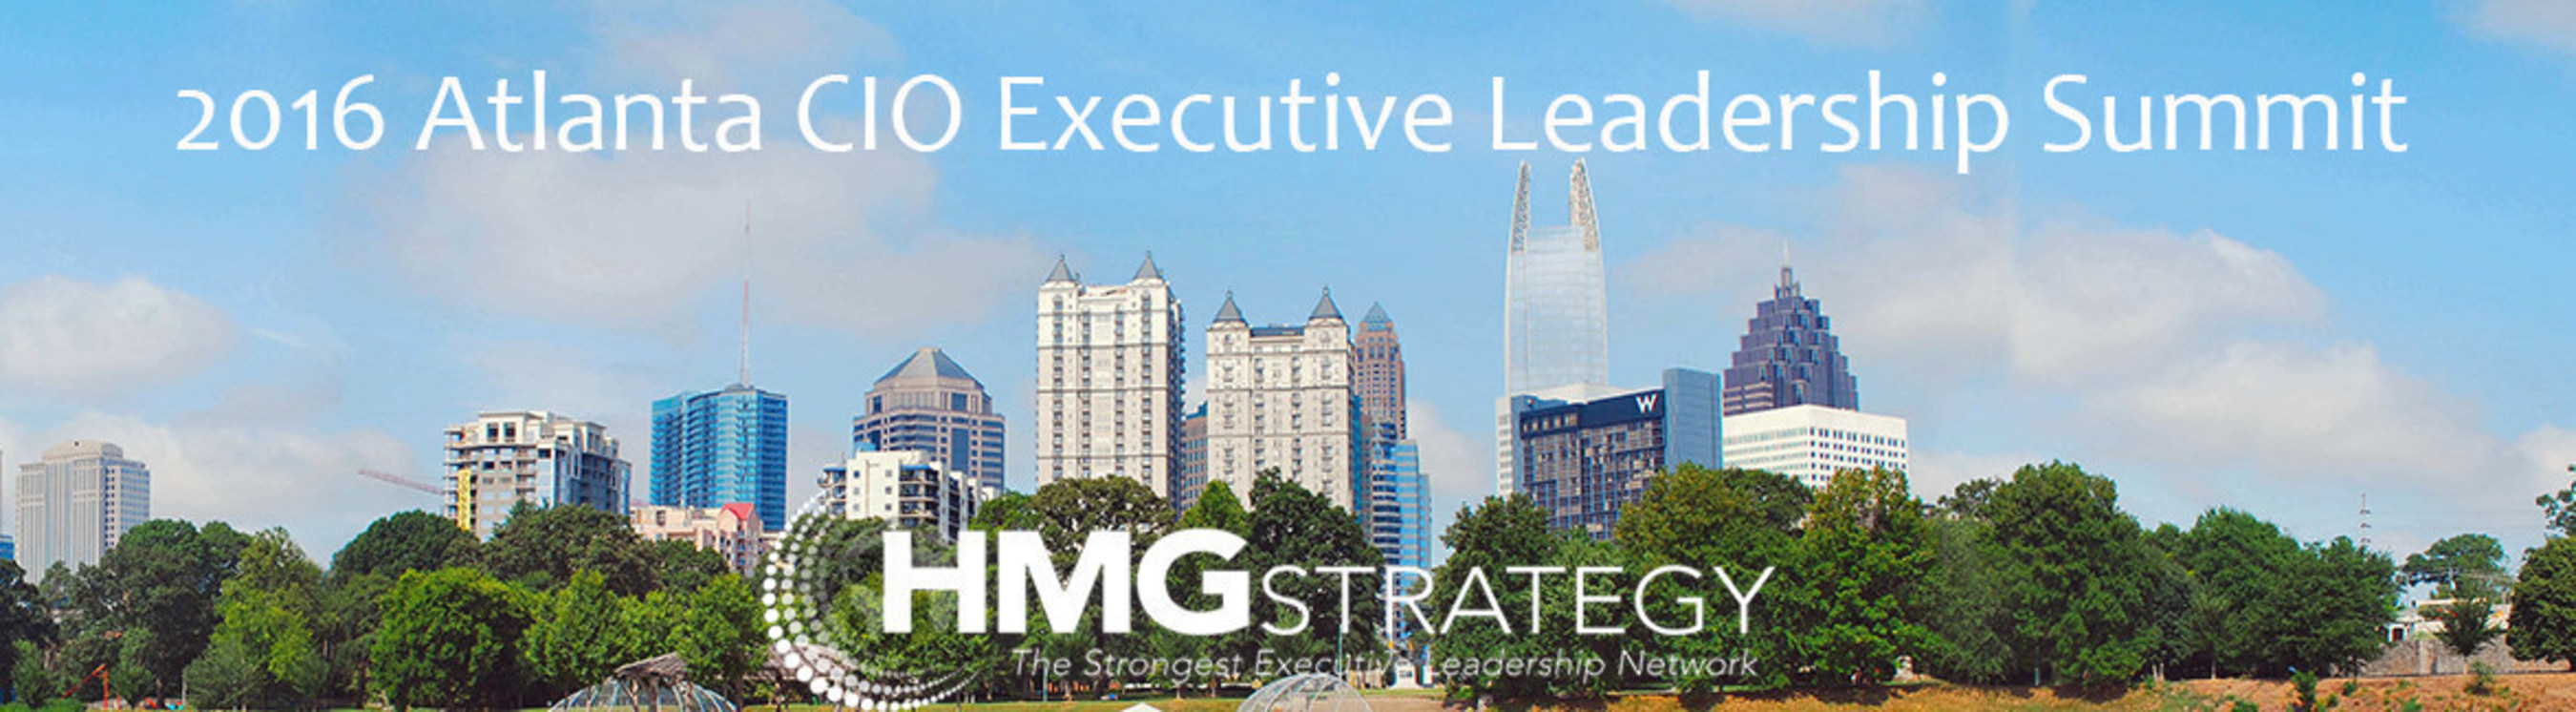 Leading the Digital Transformation Charge Captures the Discussion at HMG Strategy's Upcoming 2016 Atlanta CIO Executive Leadership Summit